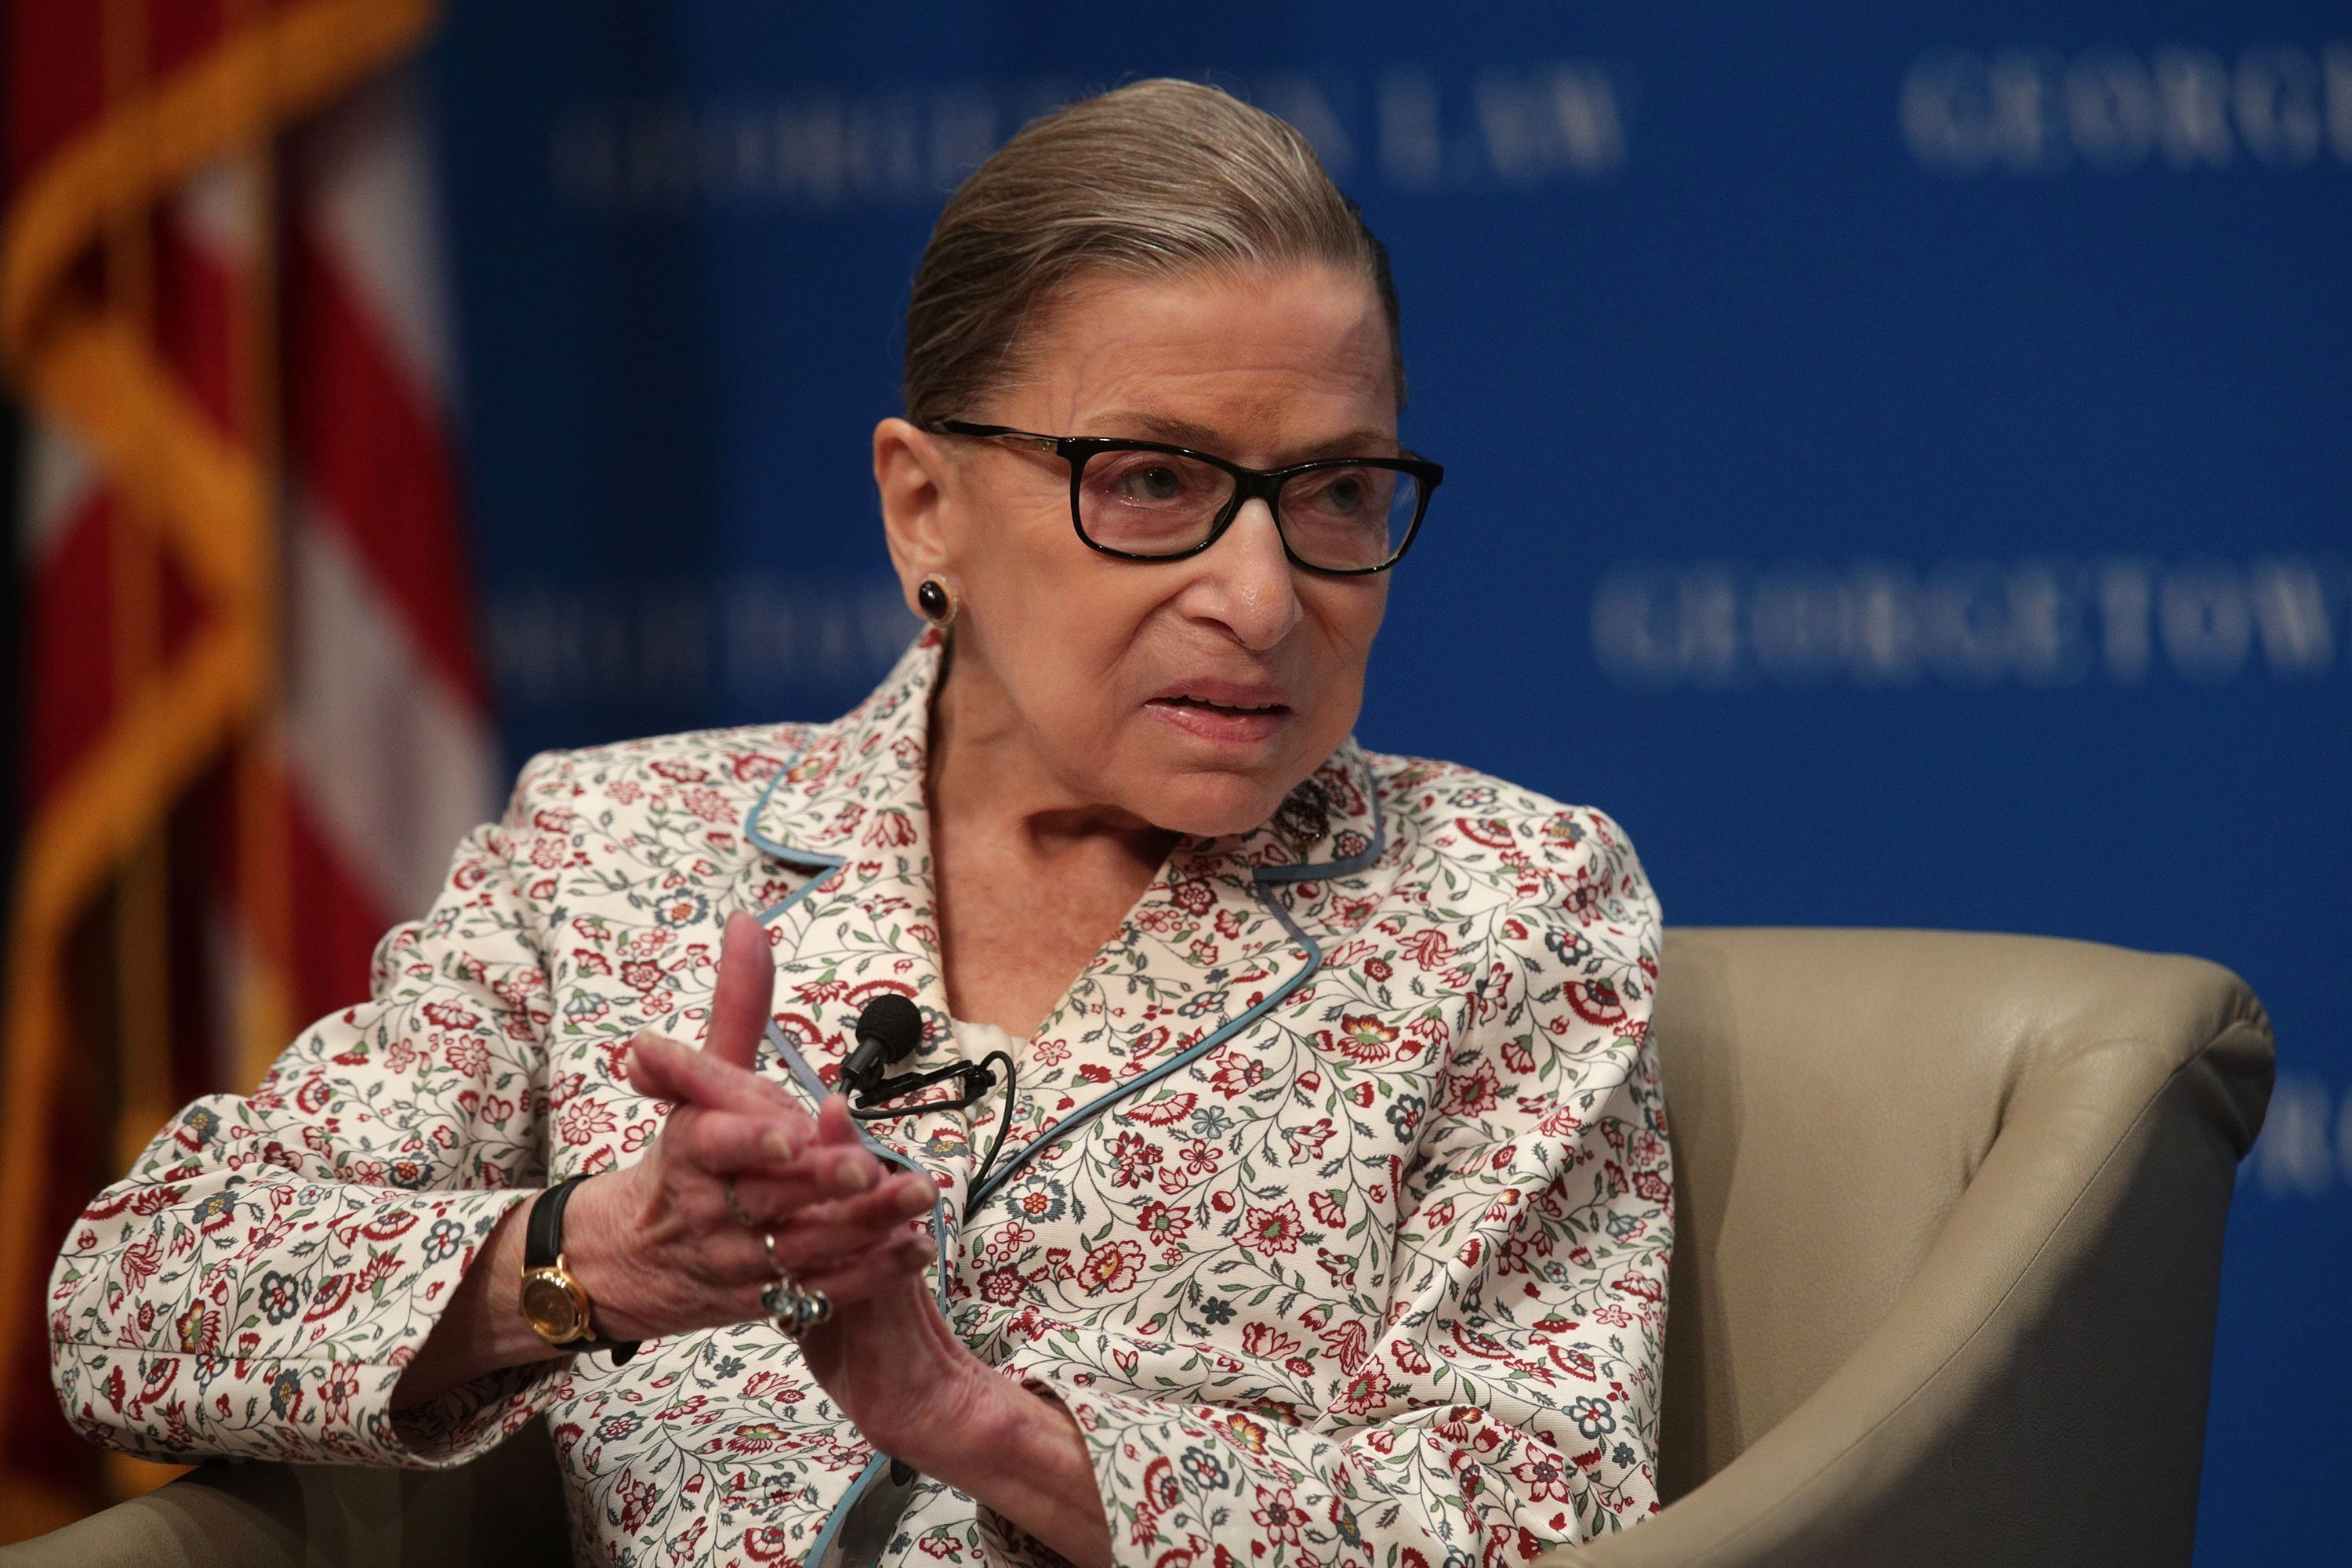 Ruth Bader Ginsburg back at work after stomach bug